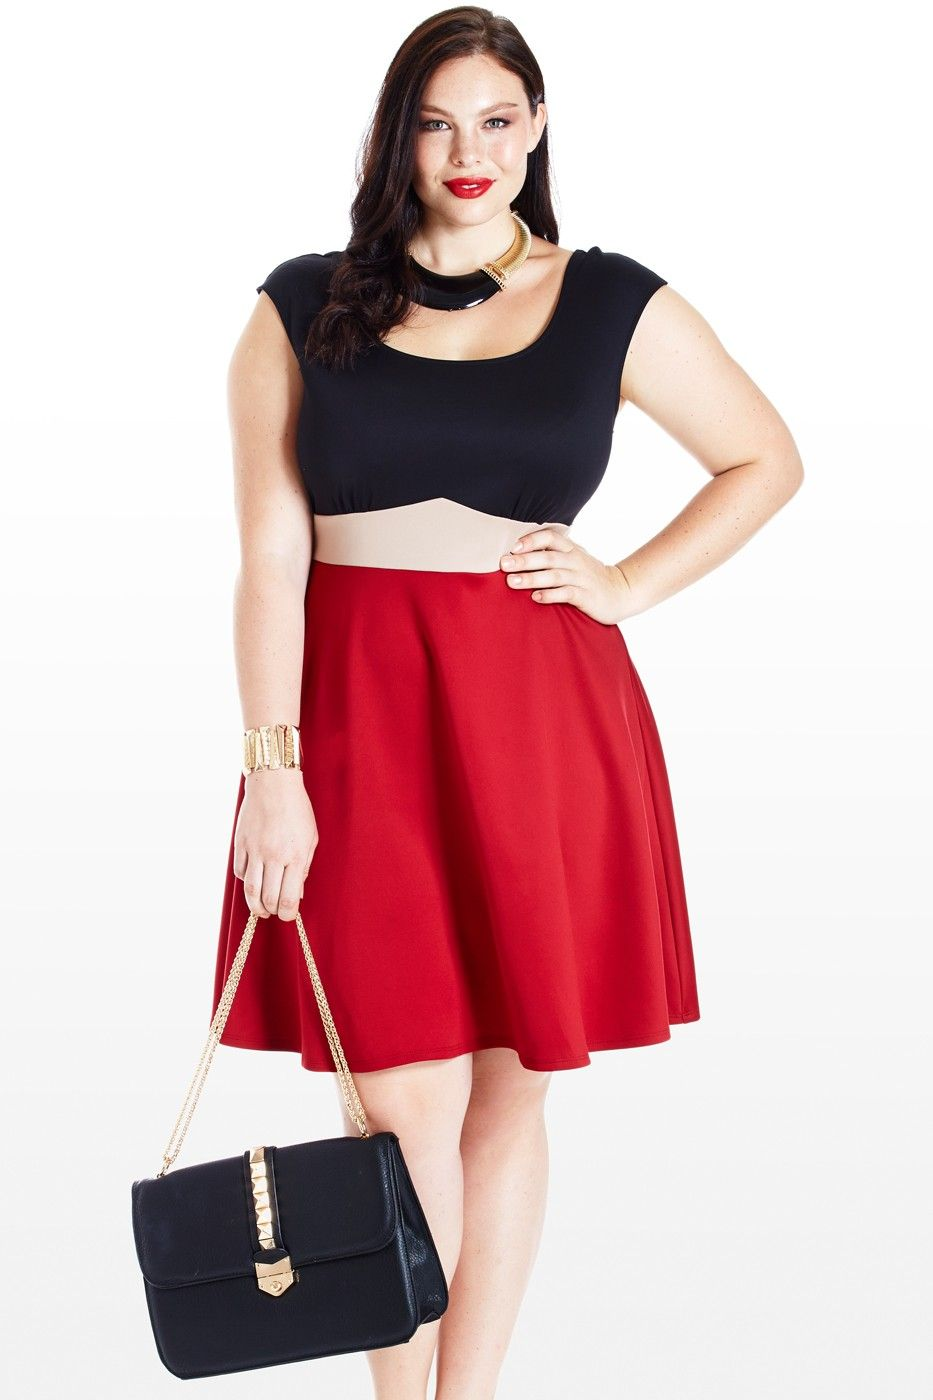 Capped Off Flared Colorblock Dress Bbw Personal Taste With A Twist